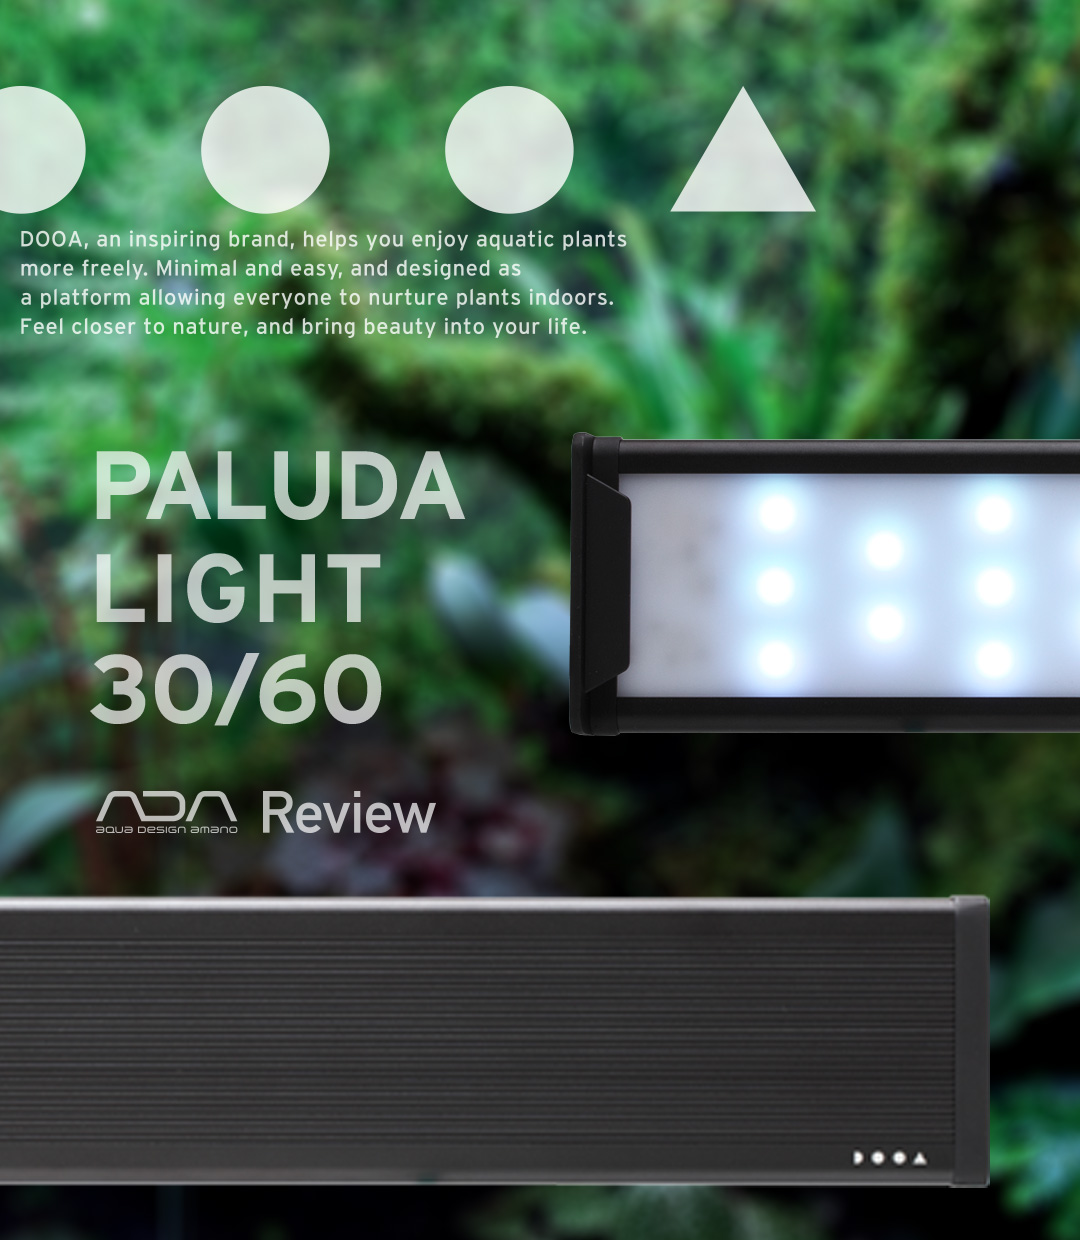 DOOA PALUDA LIGHT 30/60 'Looking for lighting that recreates the ambience of a forest floor'